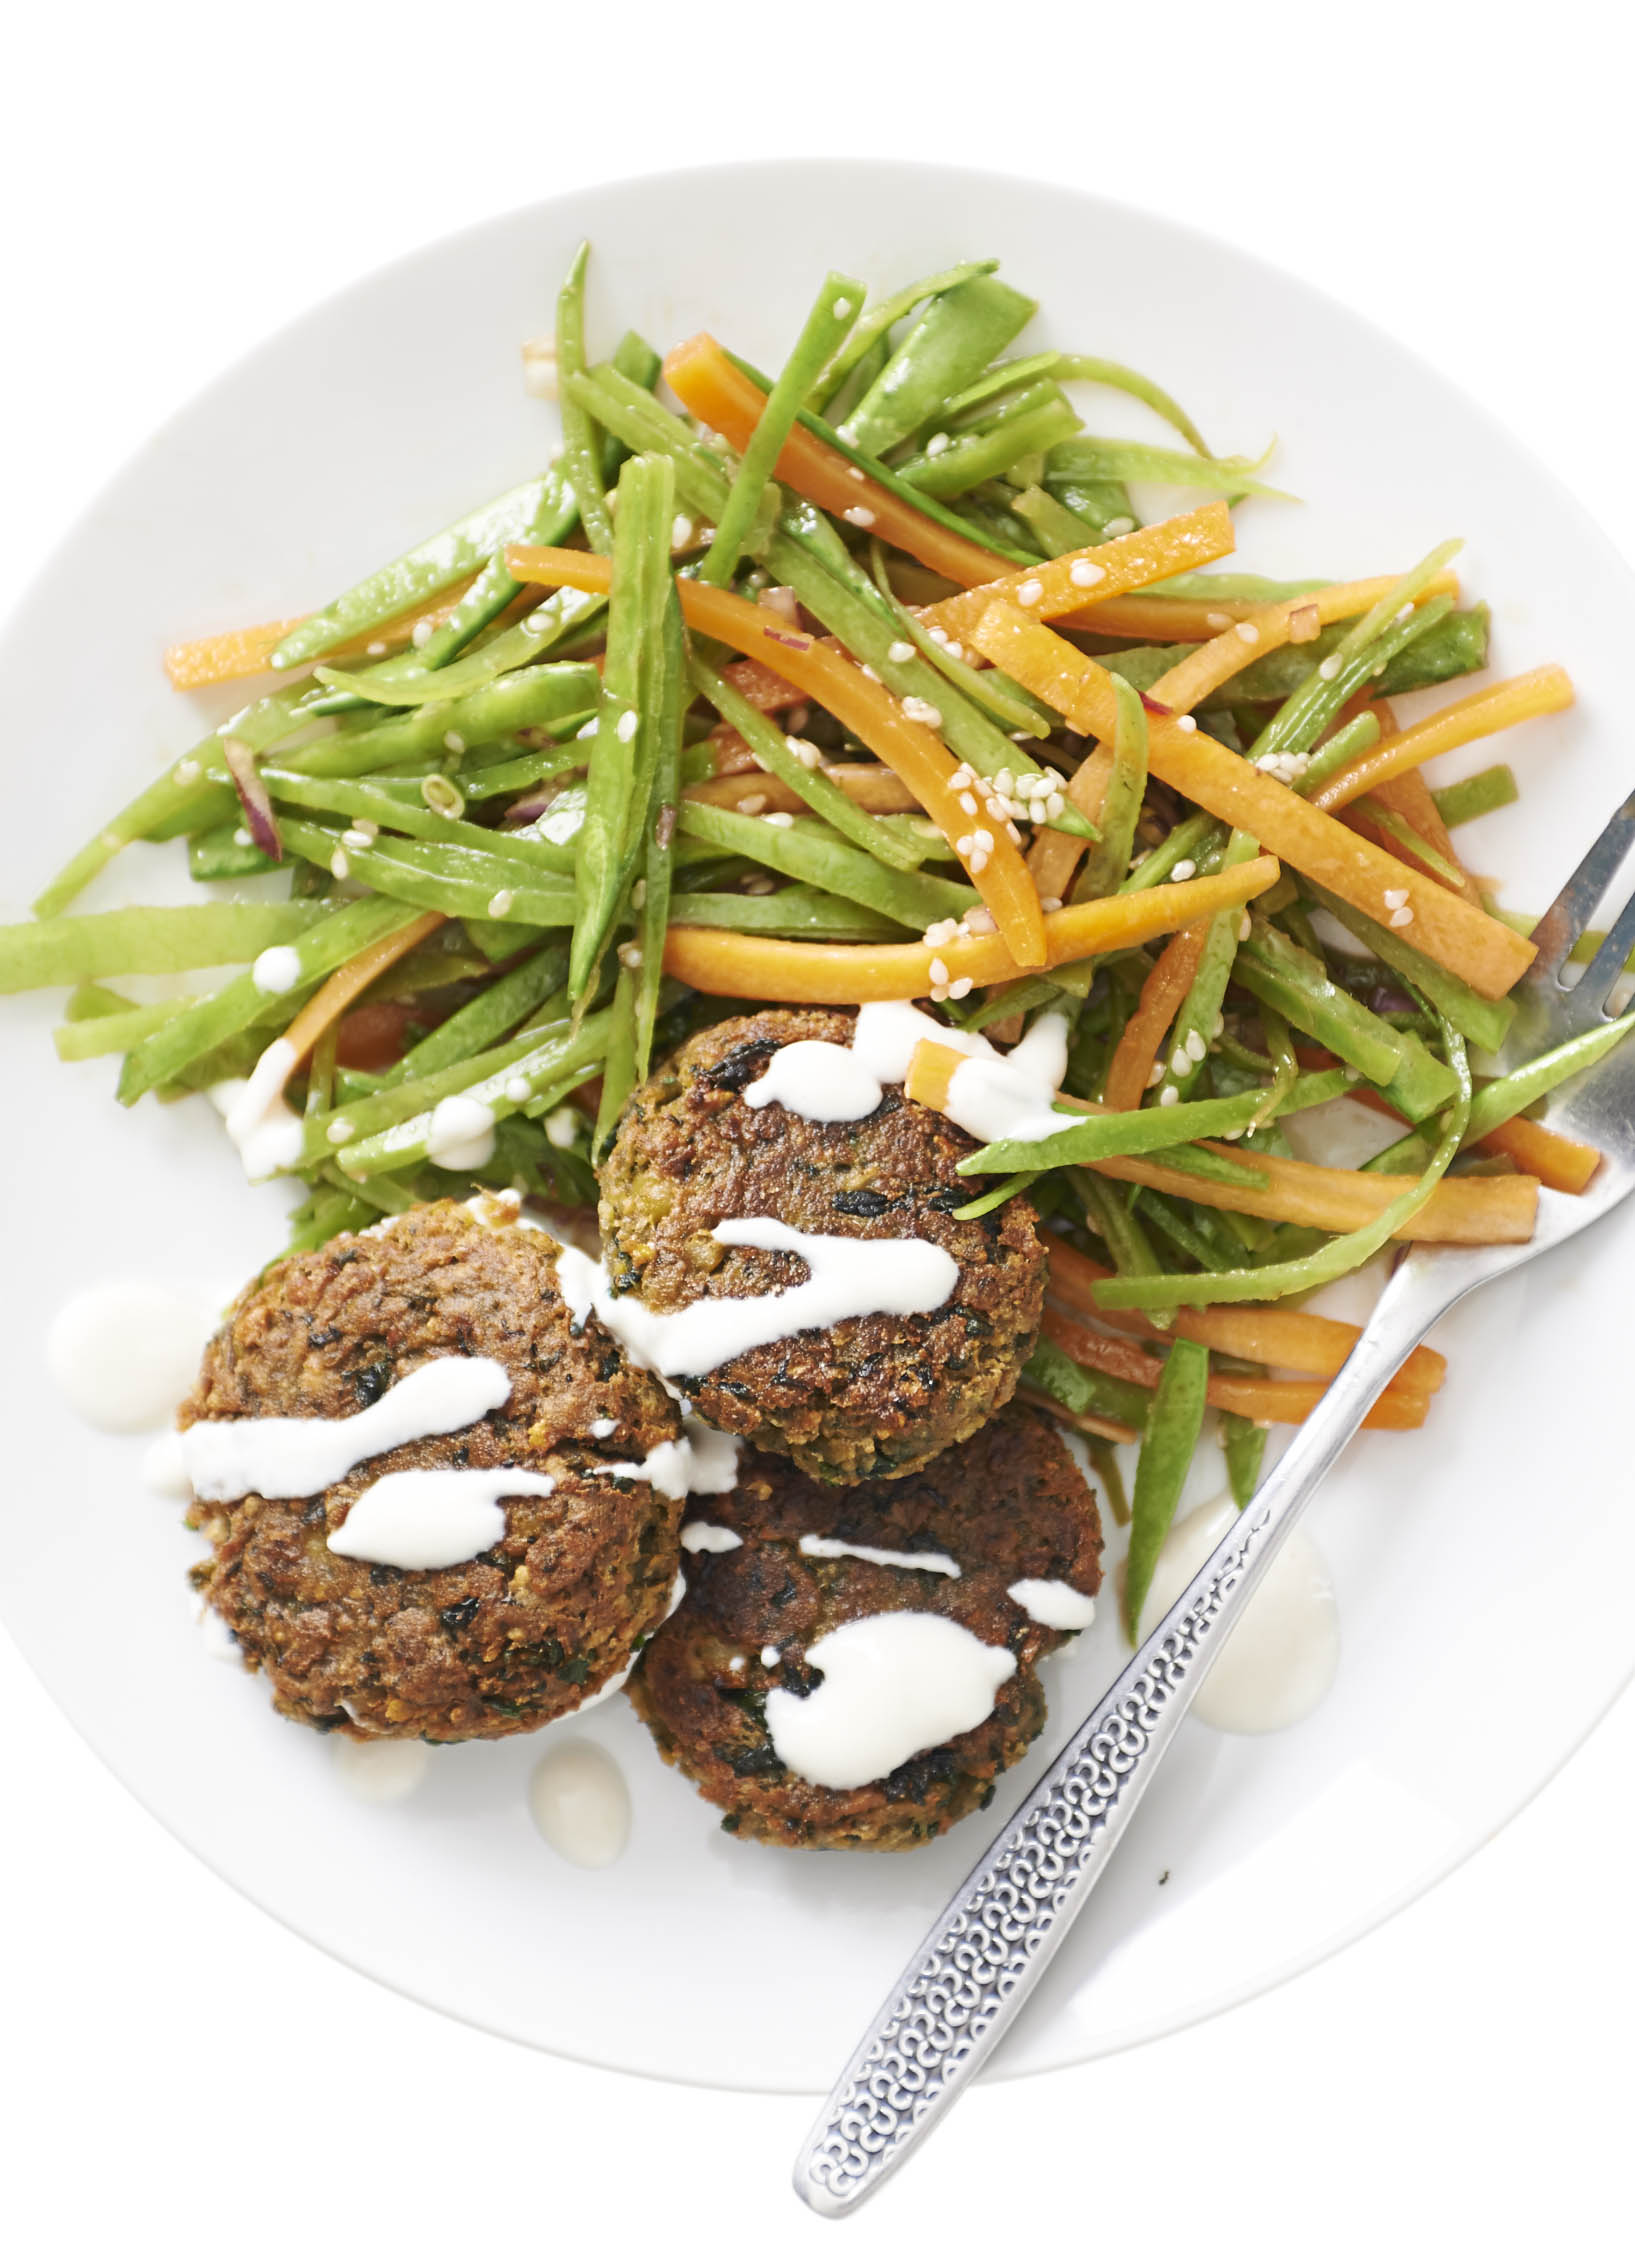 Spinach Falafel With Sesame Mangetout Salad